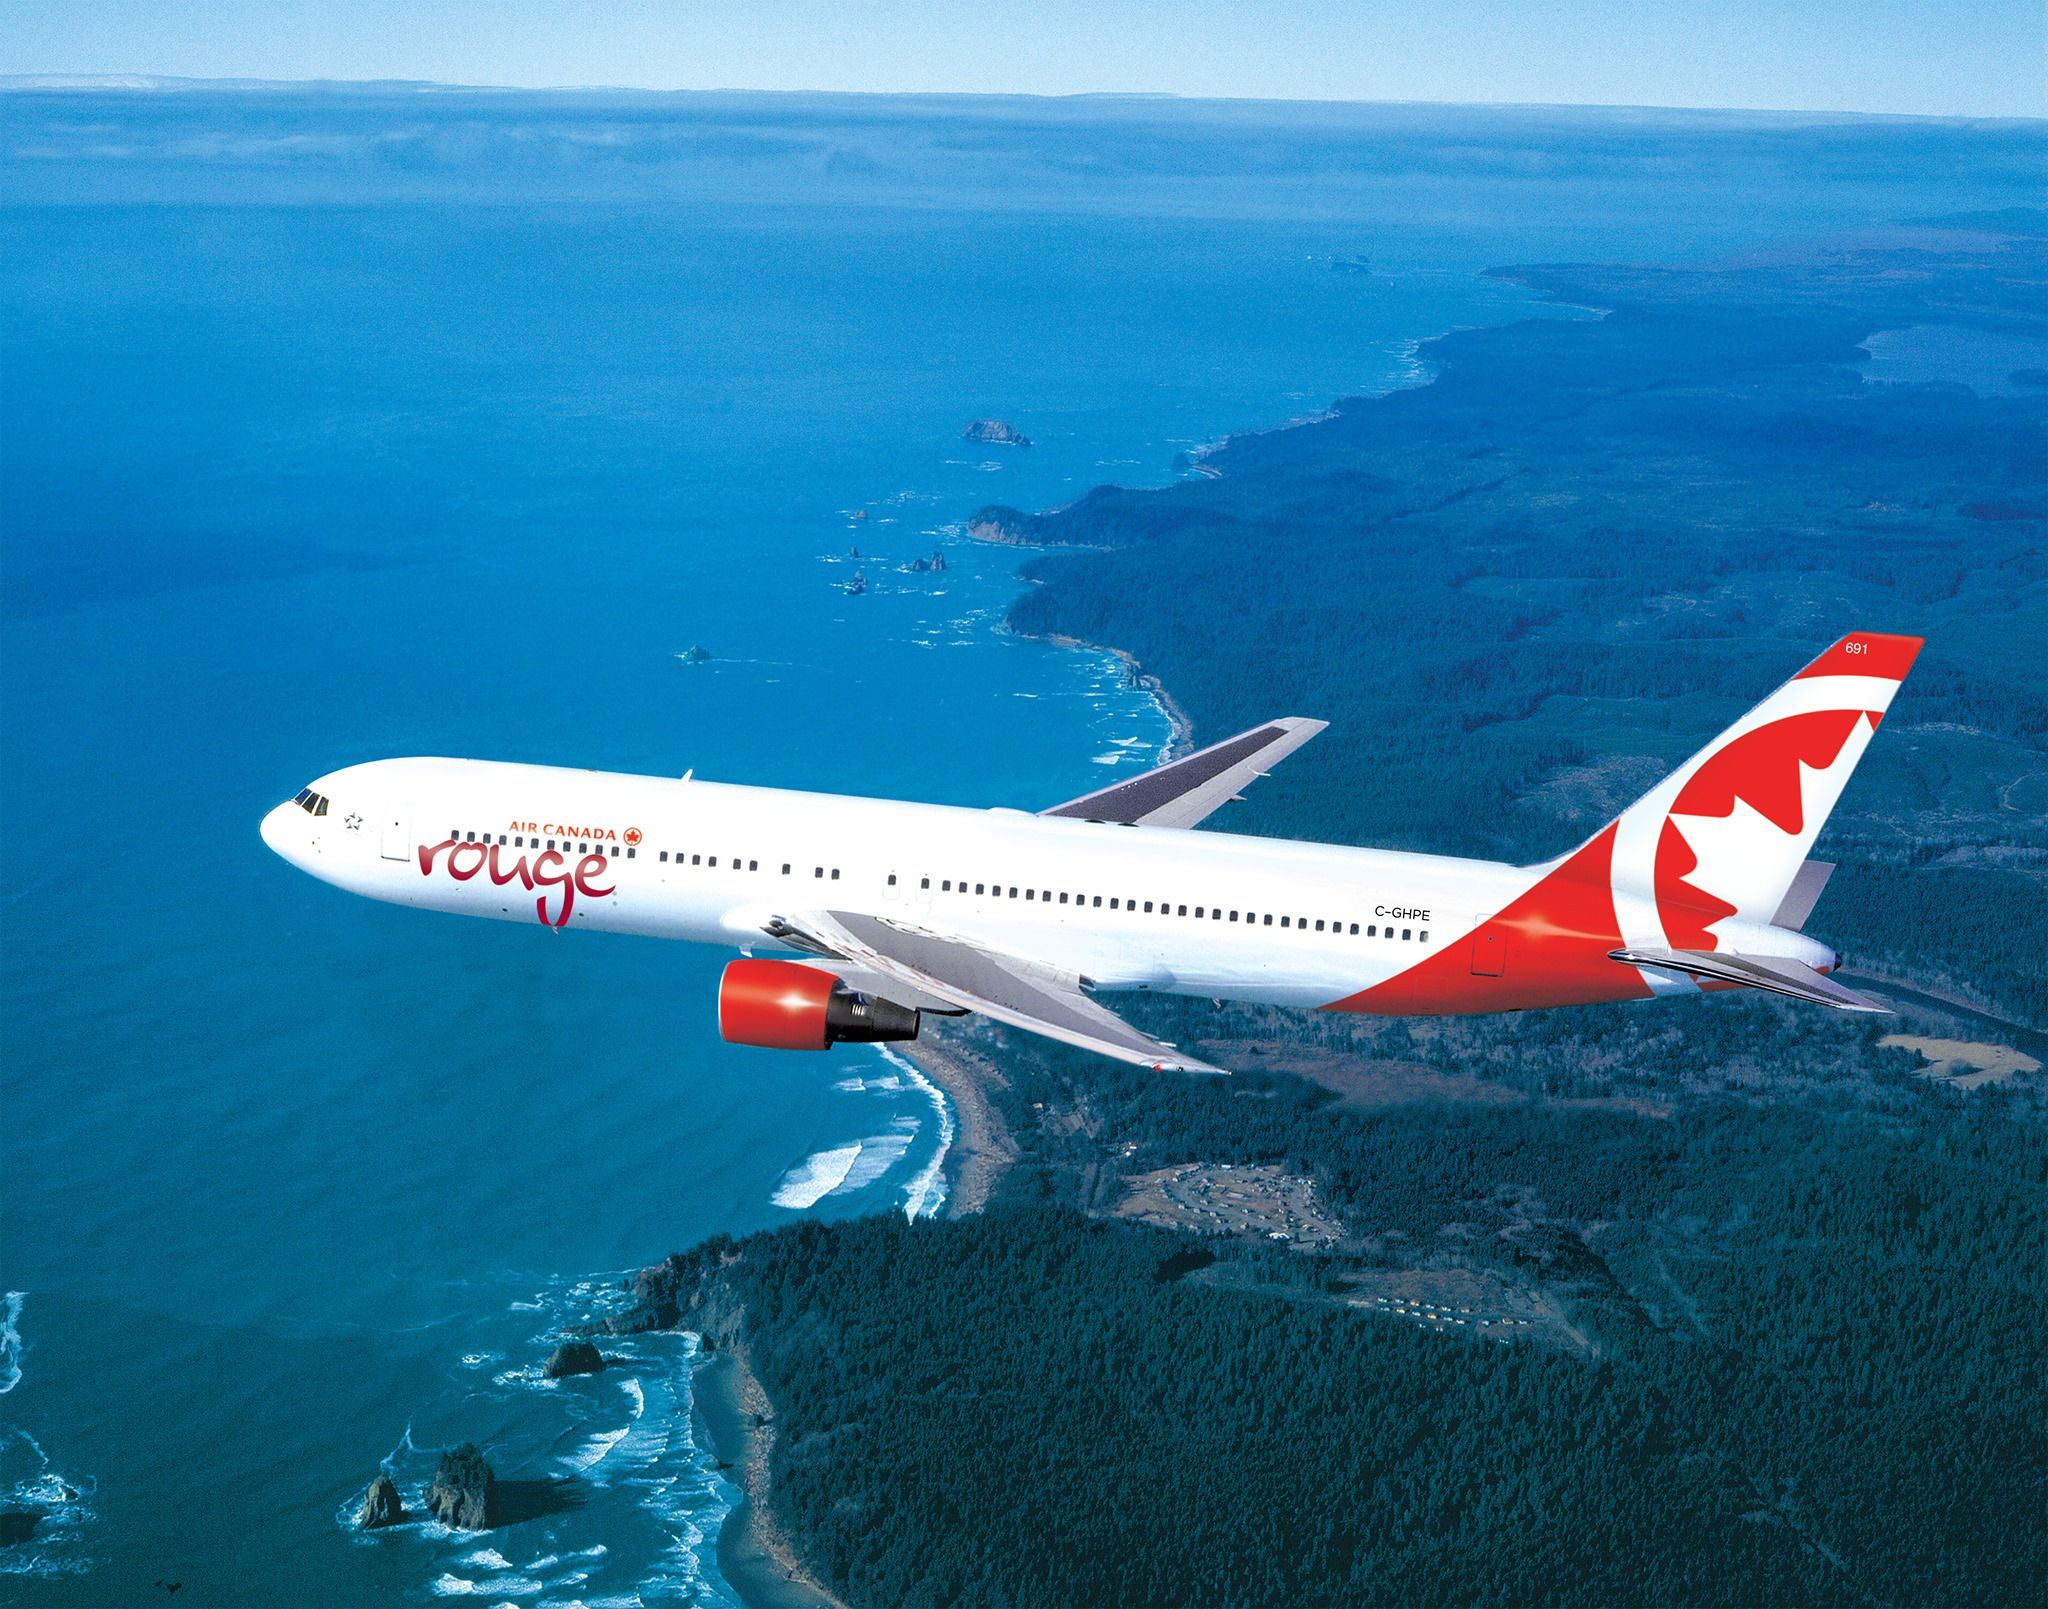 On long-haul flights Air Canada Rouge generally uses ageing Boeing 767-300ER aircraft